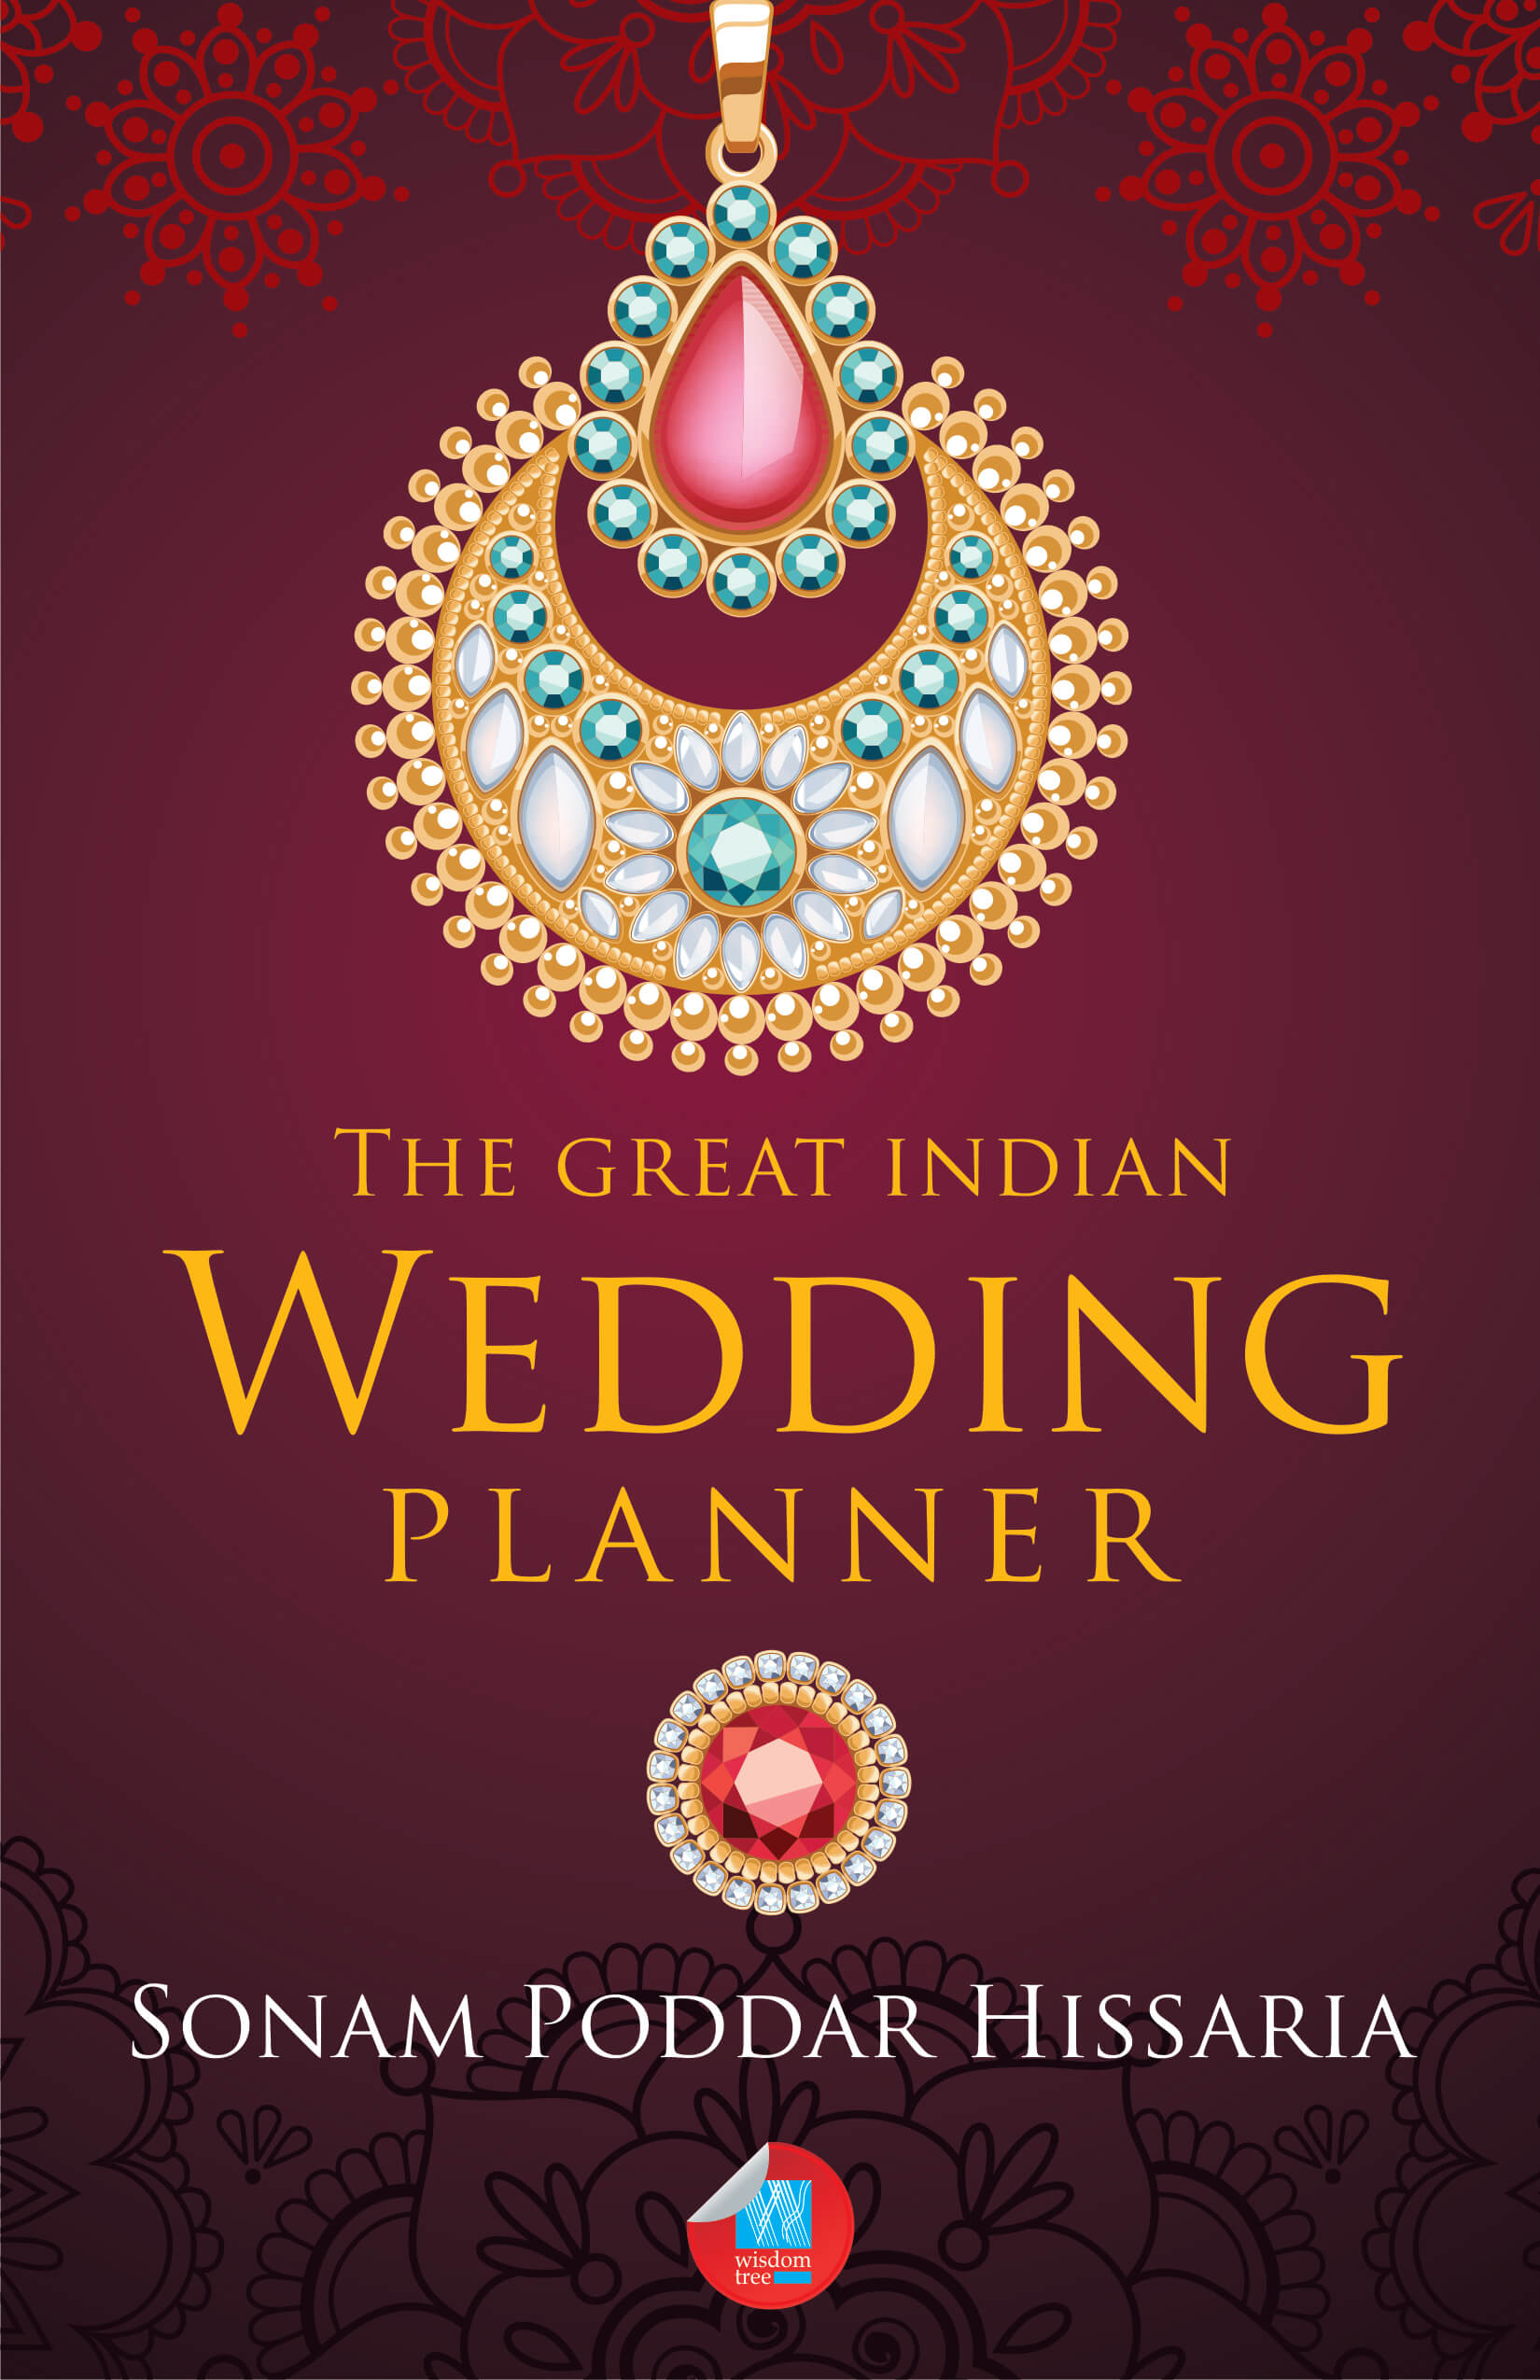 The Great Indian Wedding Planner